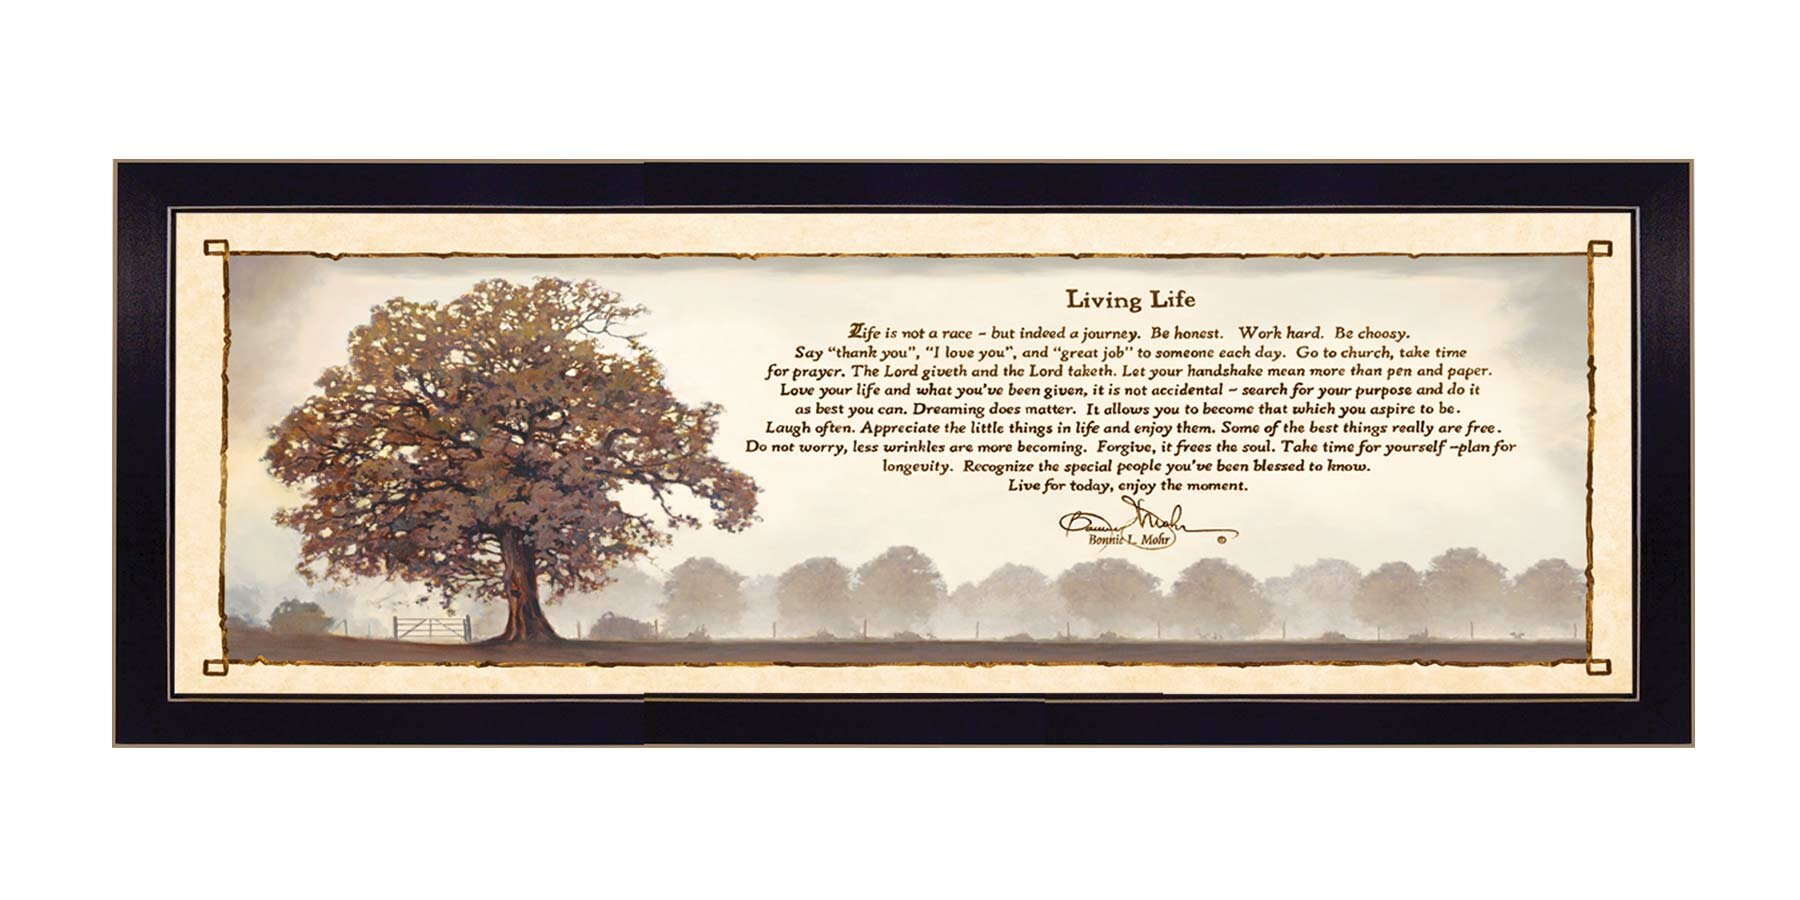 Merveilleux Trendy Decor 4U U0027Living Lifeu0027 Framed Textual Art | Wayfair